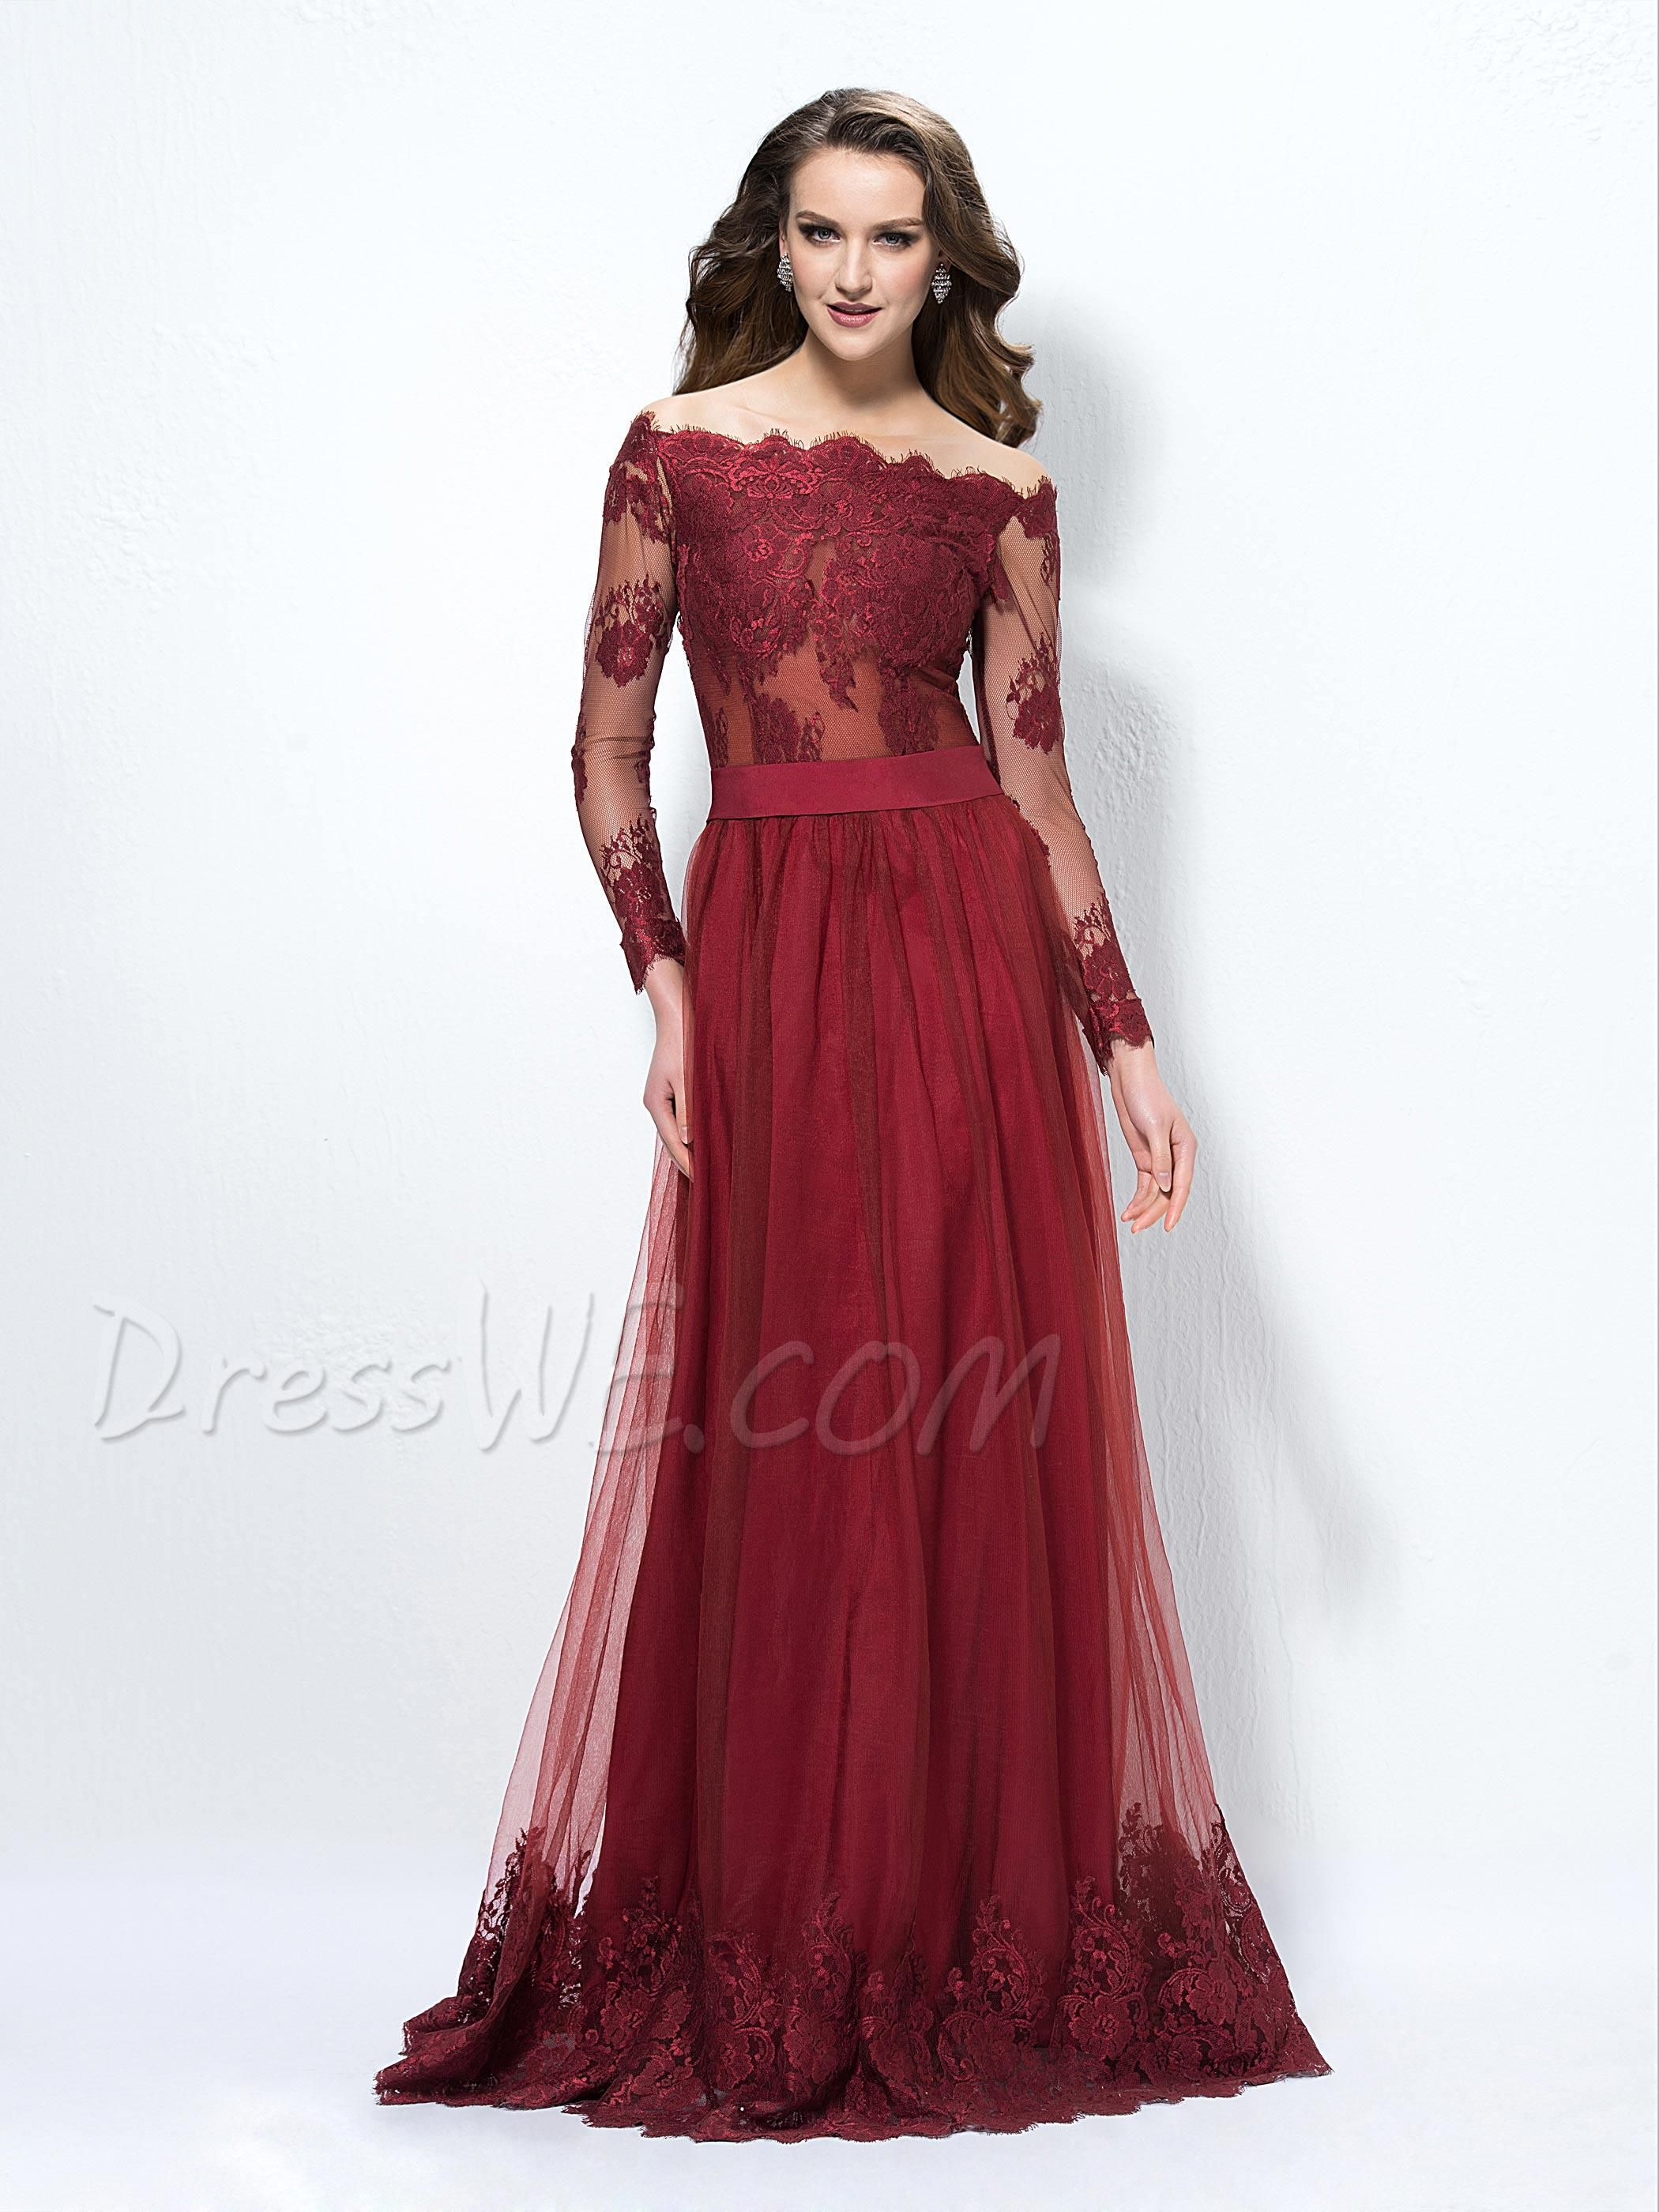 $143.99 Dresswe.com SUPPLIES Off-The-Shoulder A-Line Sleeves Chinese ...